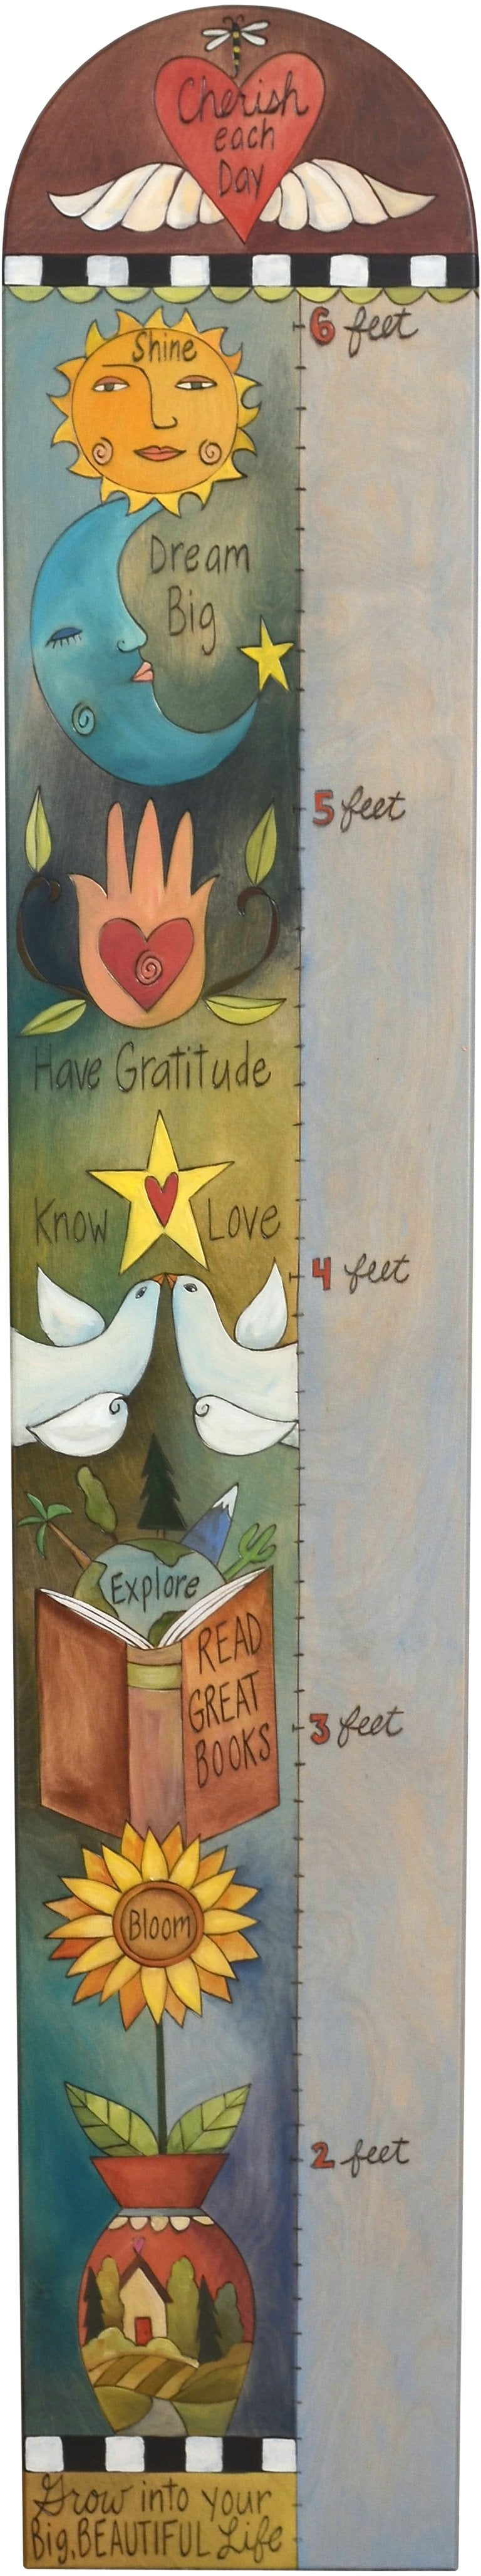 Everlasting Growth Chart –  Elegant growth chart with symbolic icons and a heart with wings at the top